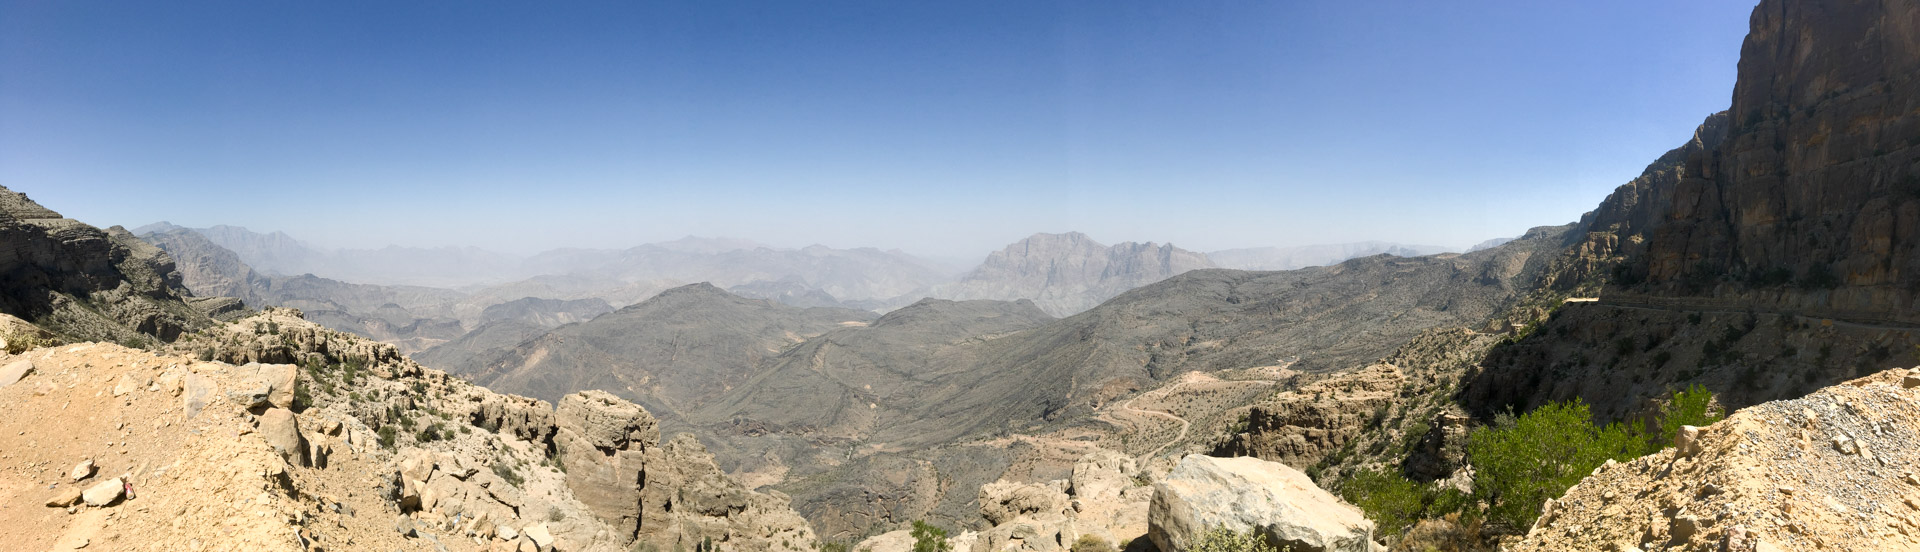 After a crazy ascend we are slowly leaving valley - the road can be seen on the far right.